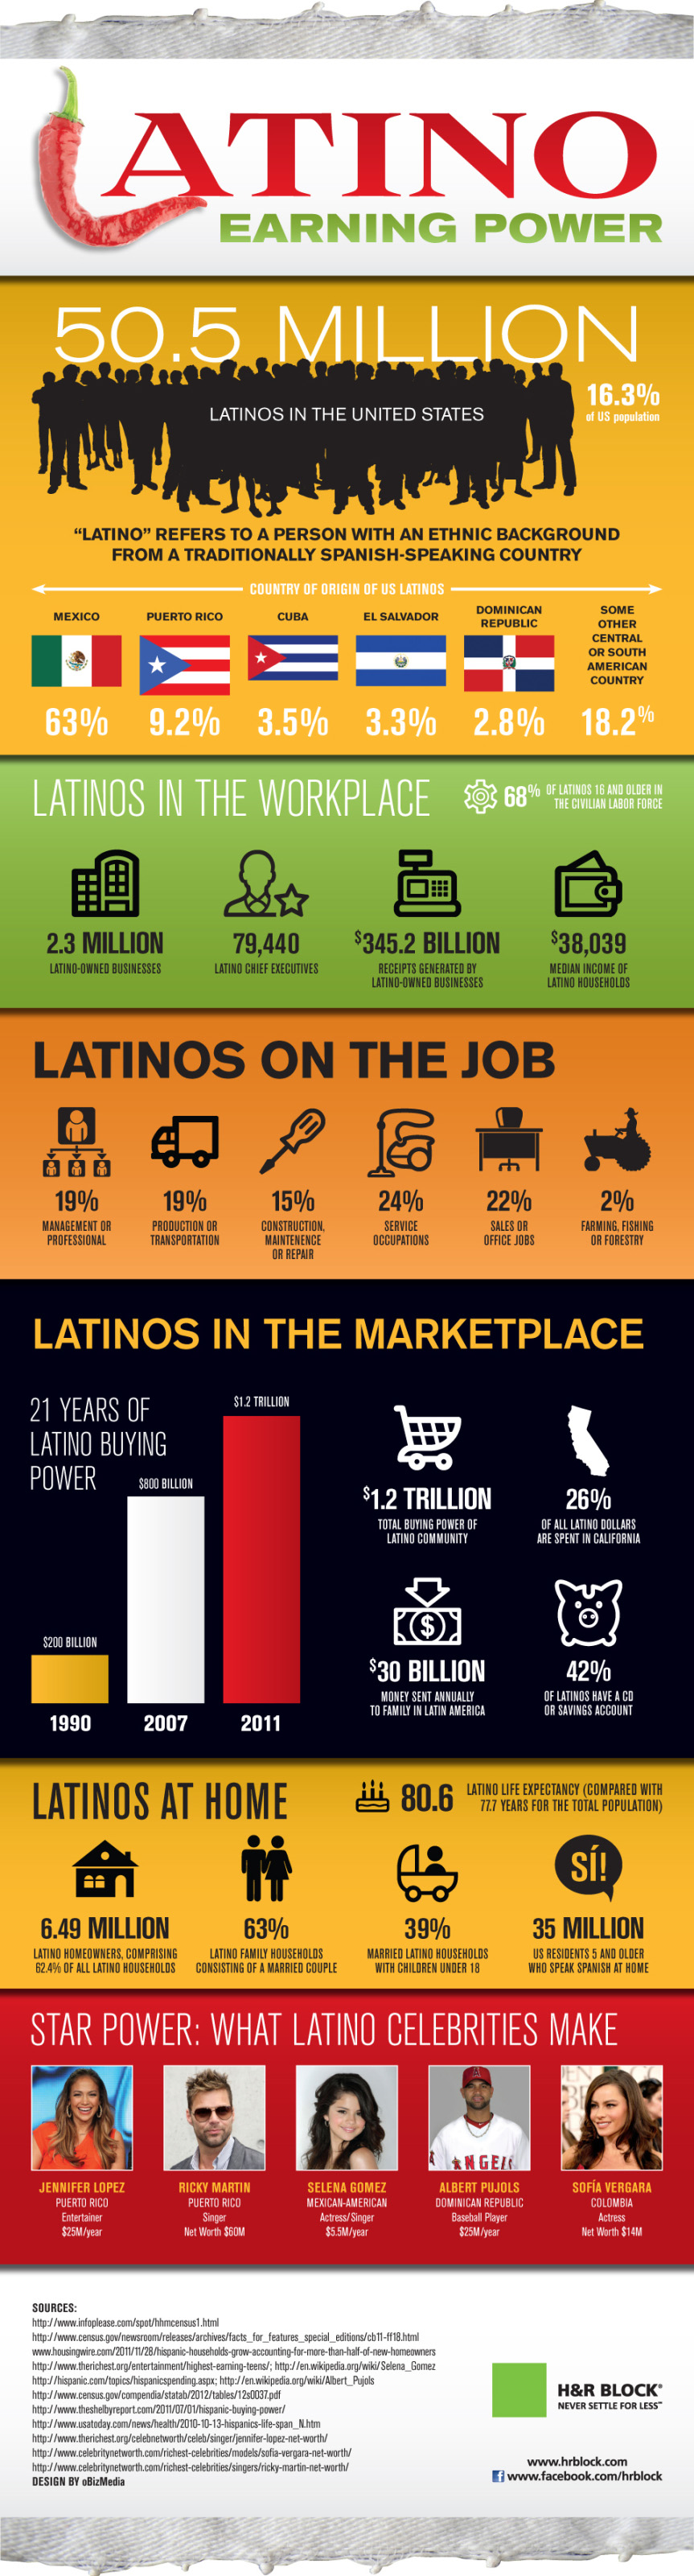 Latino Earning Power